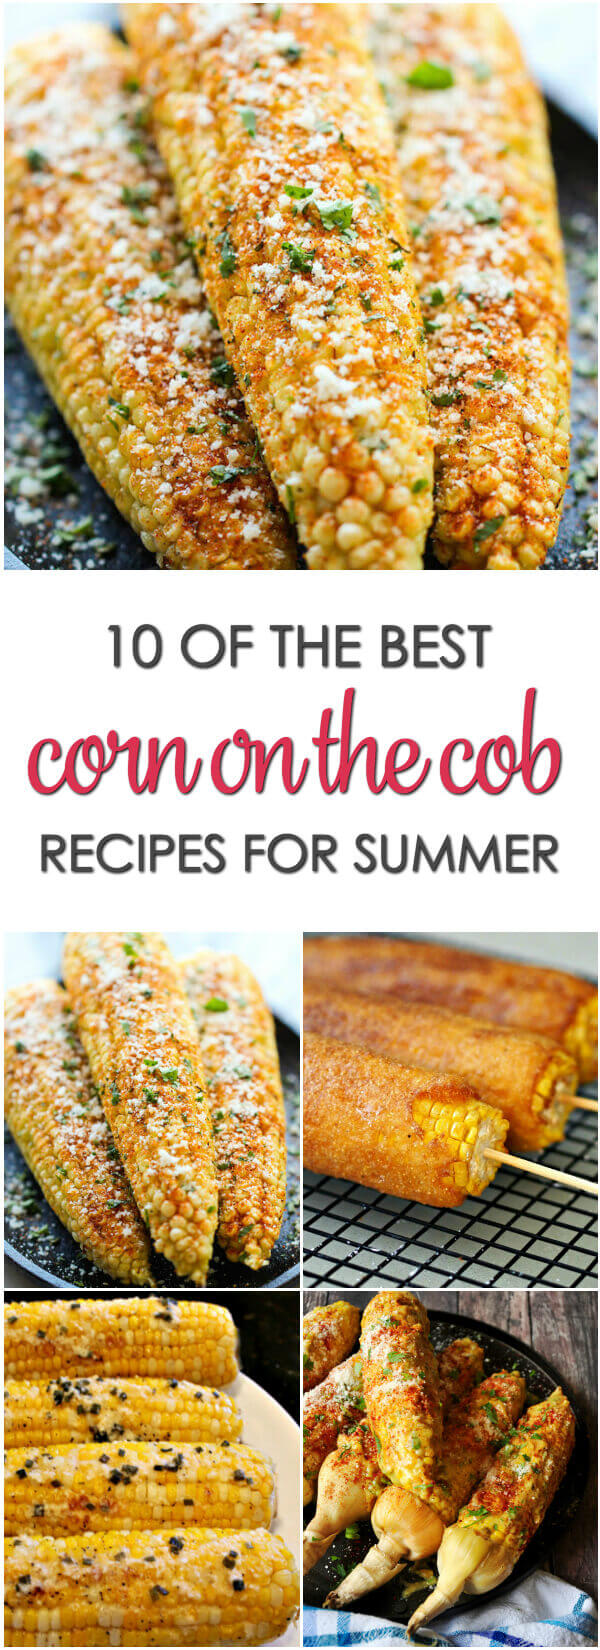 Corn on the Cob Recipes - these are some of the best corn cob recipes from across the web